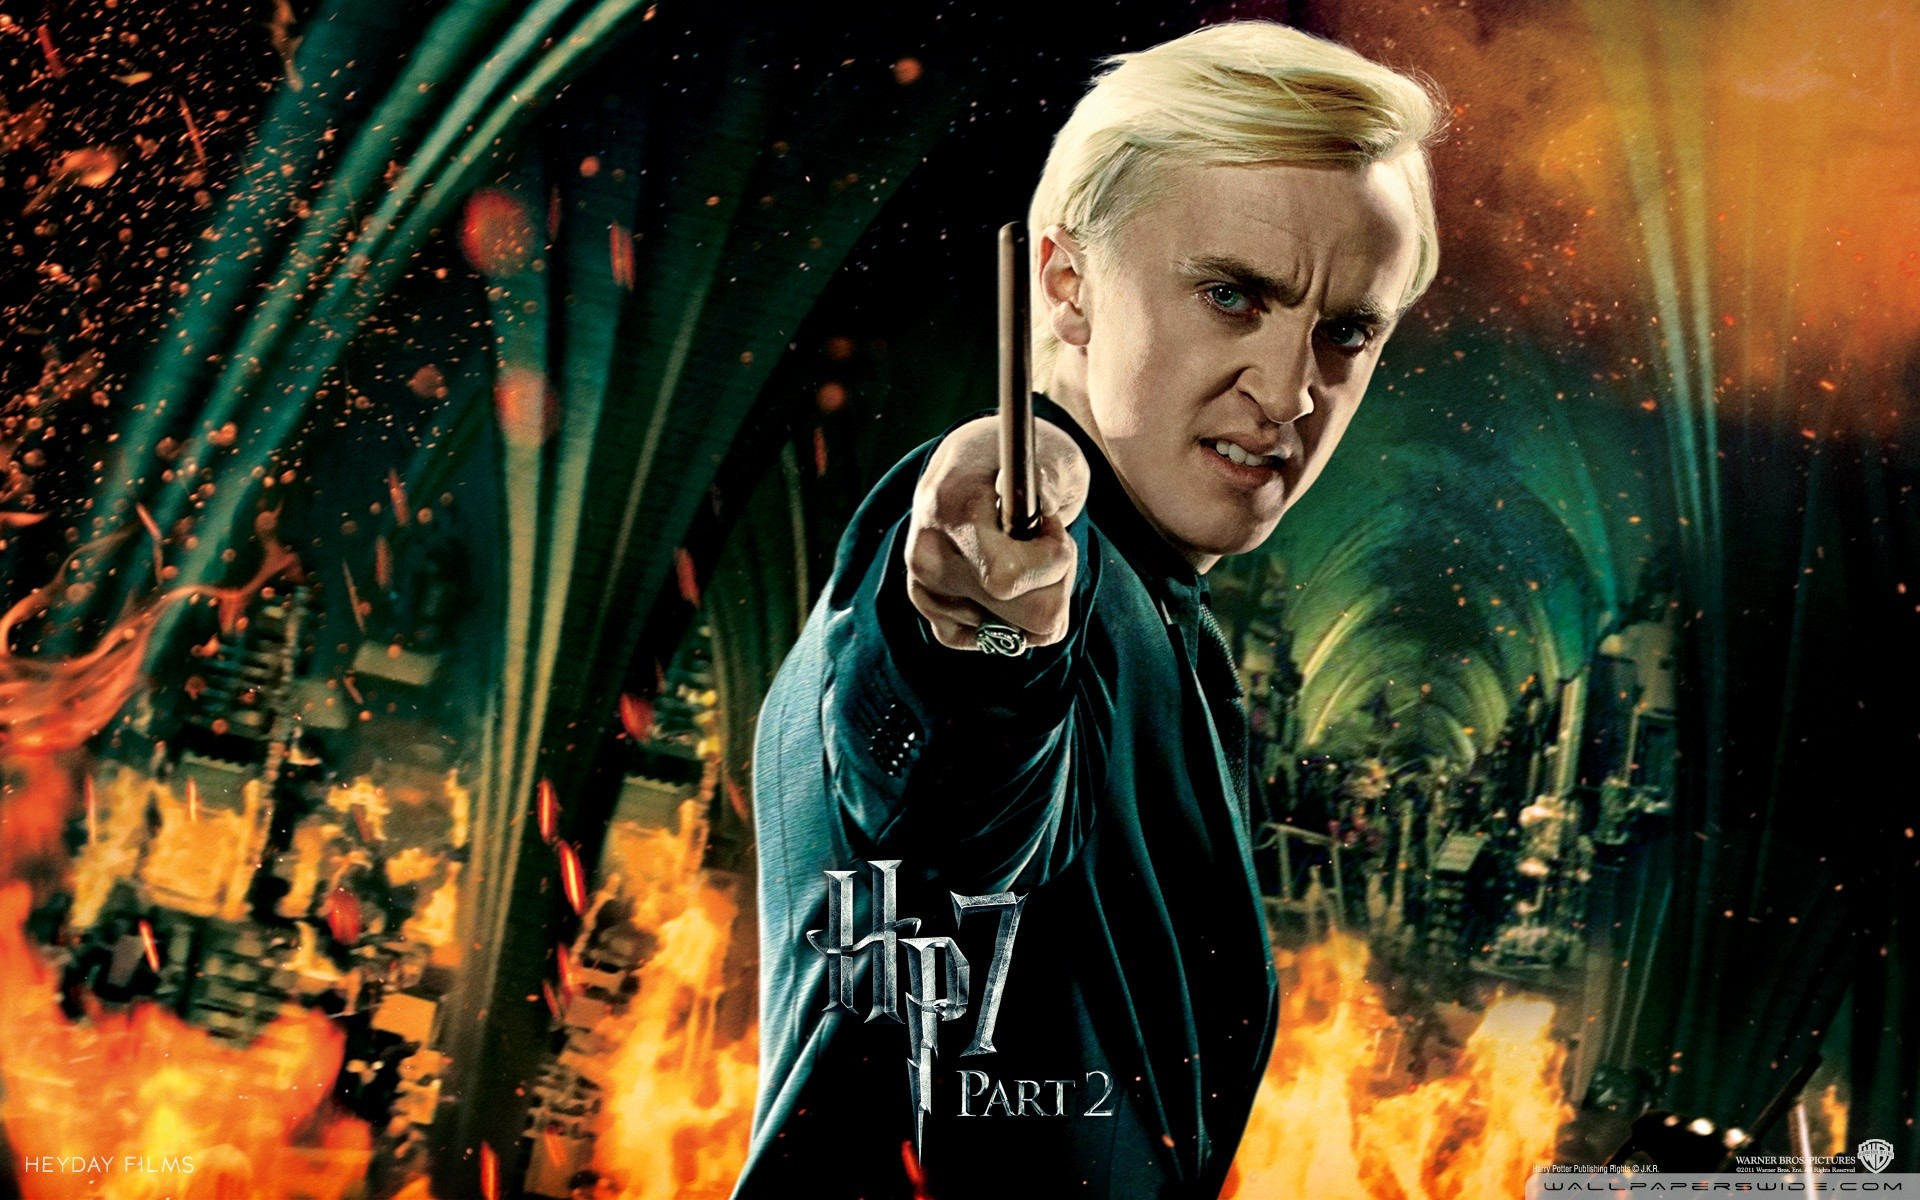 Tom Felton (Harry Potter and the Deathly Hollows